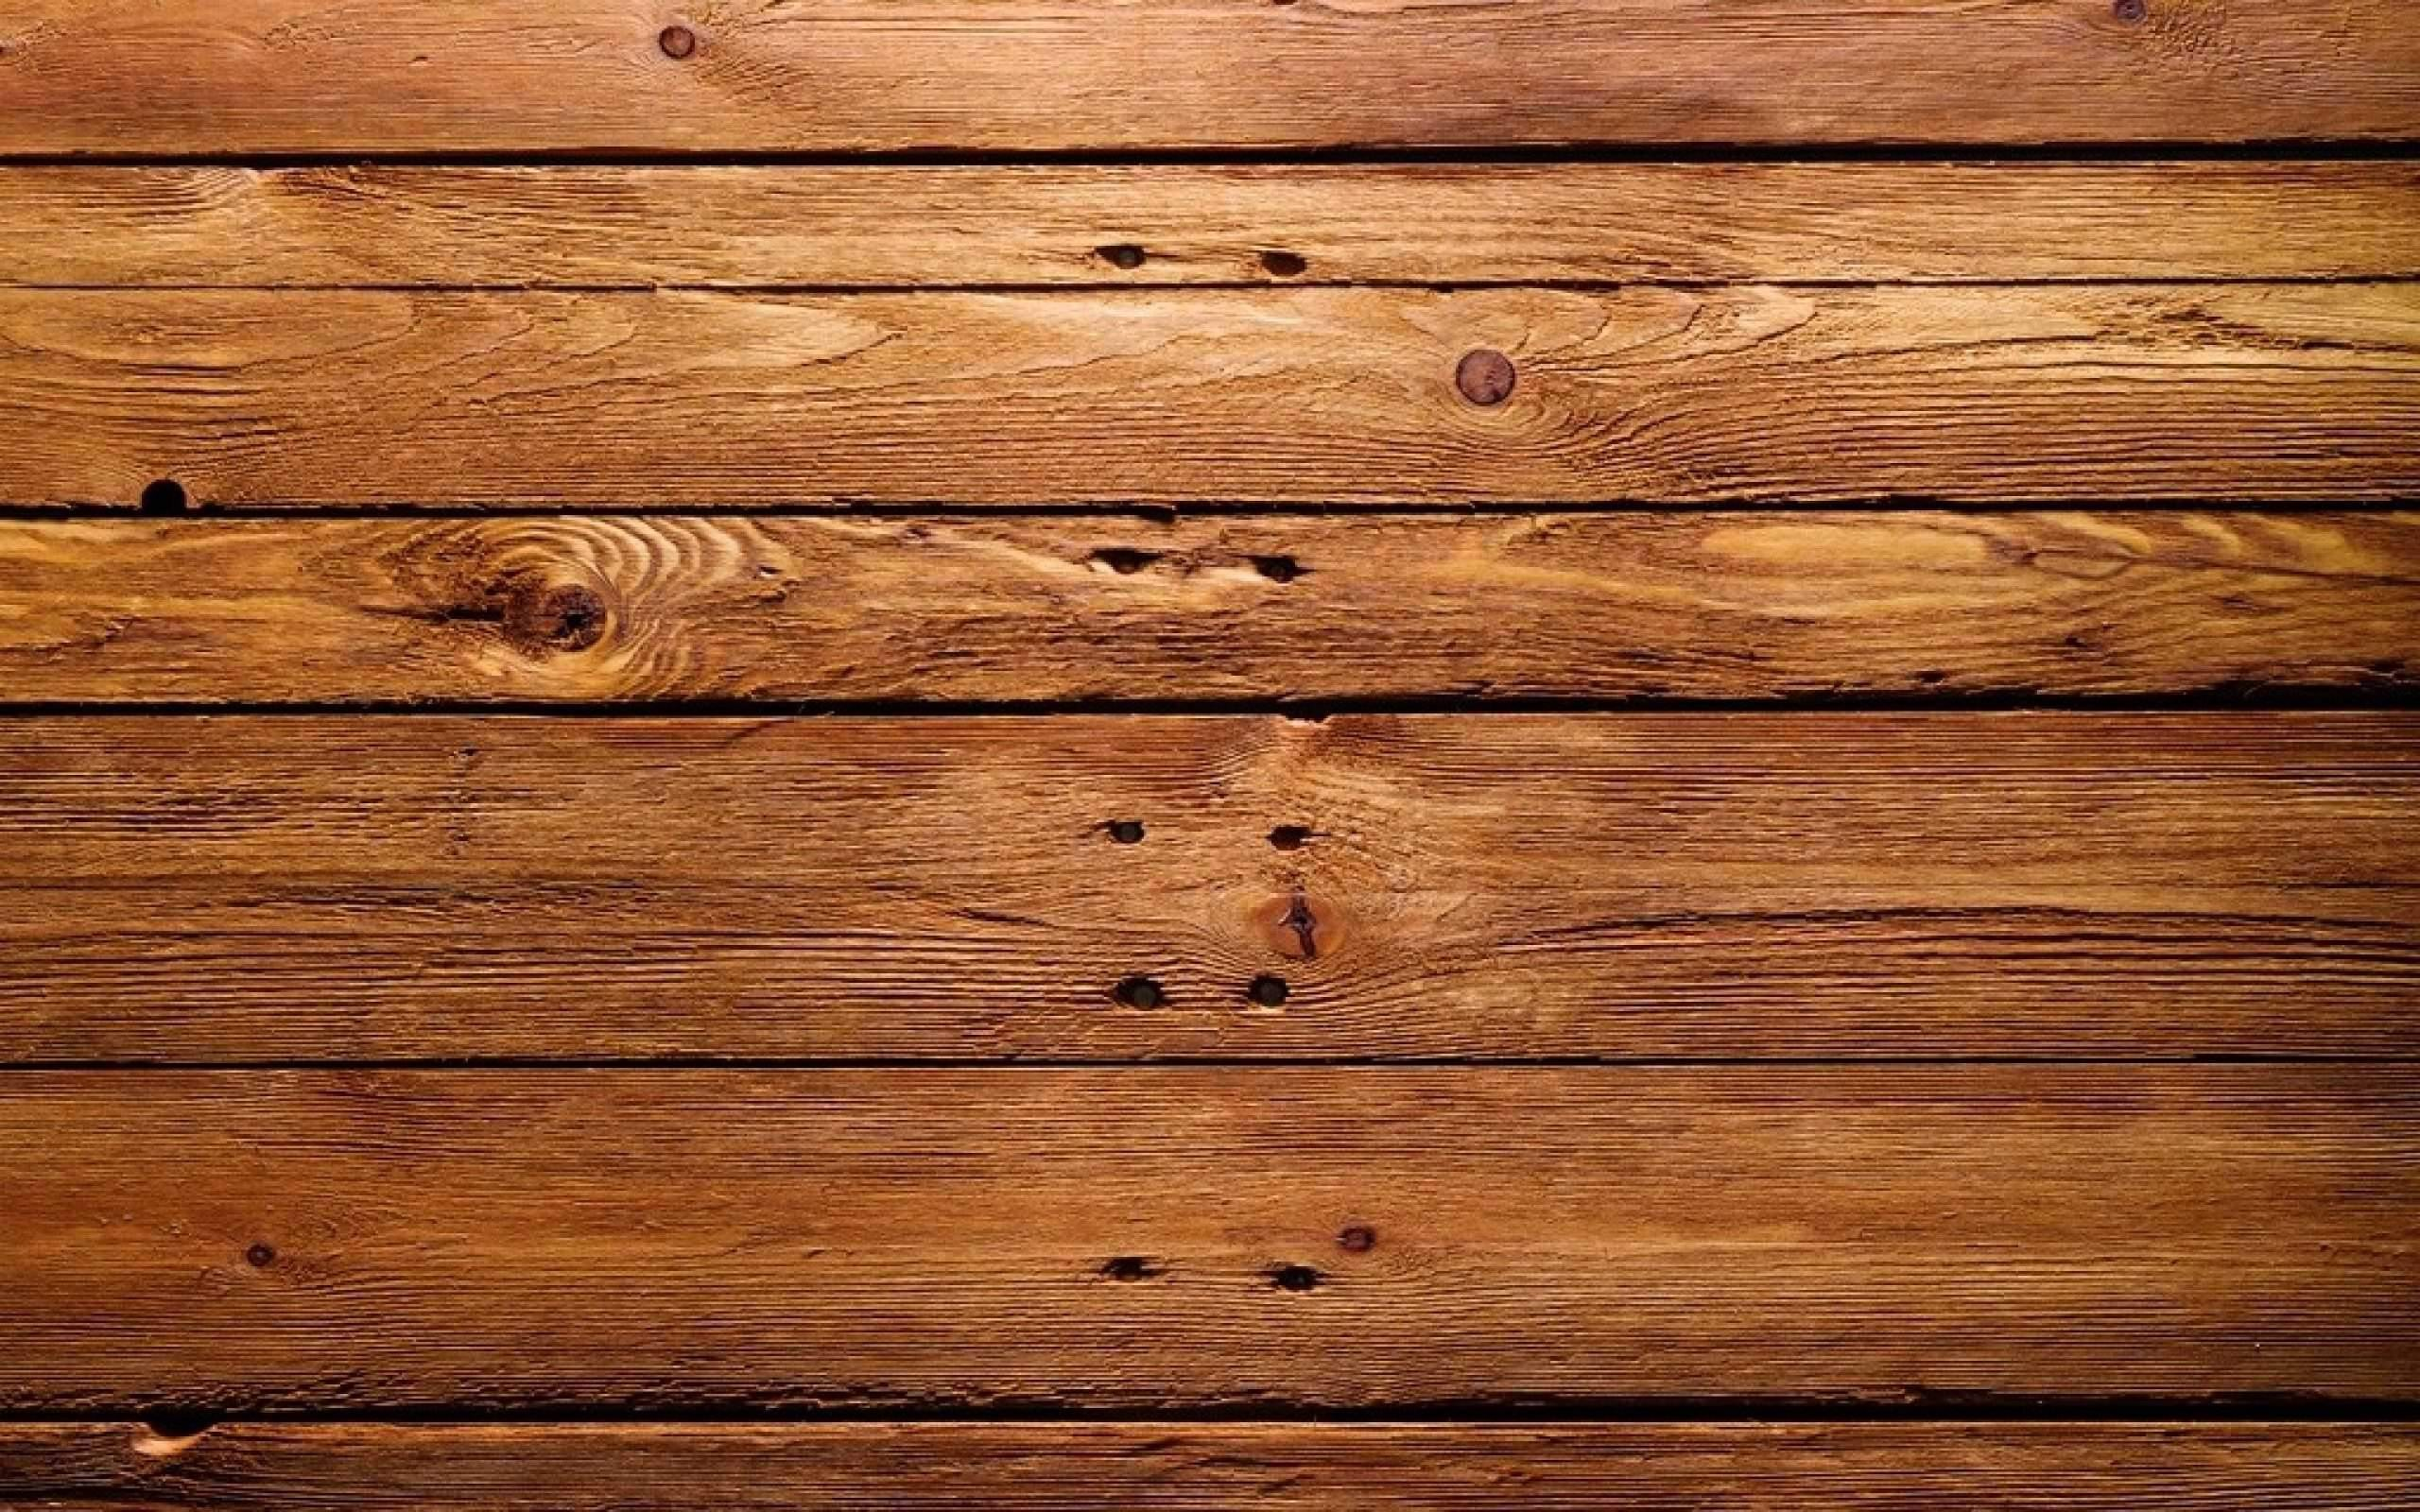 wallpaper wood 2 - photo #6